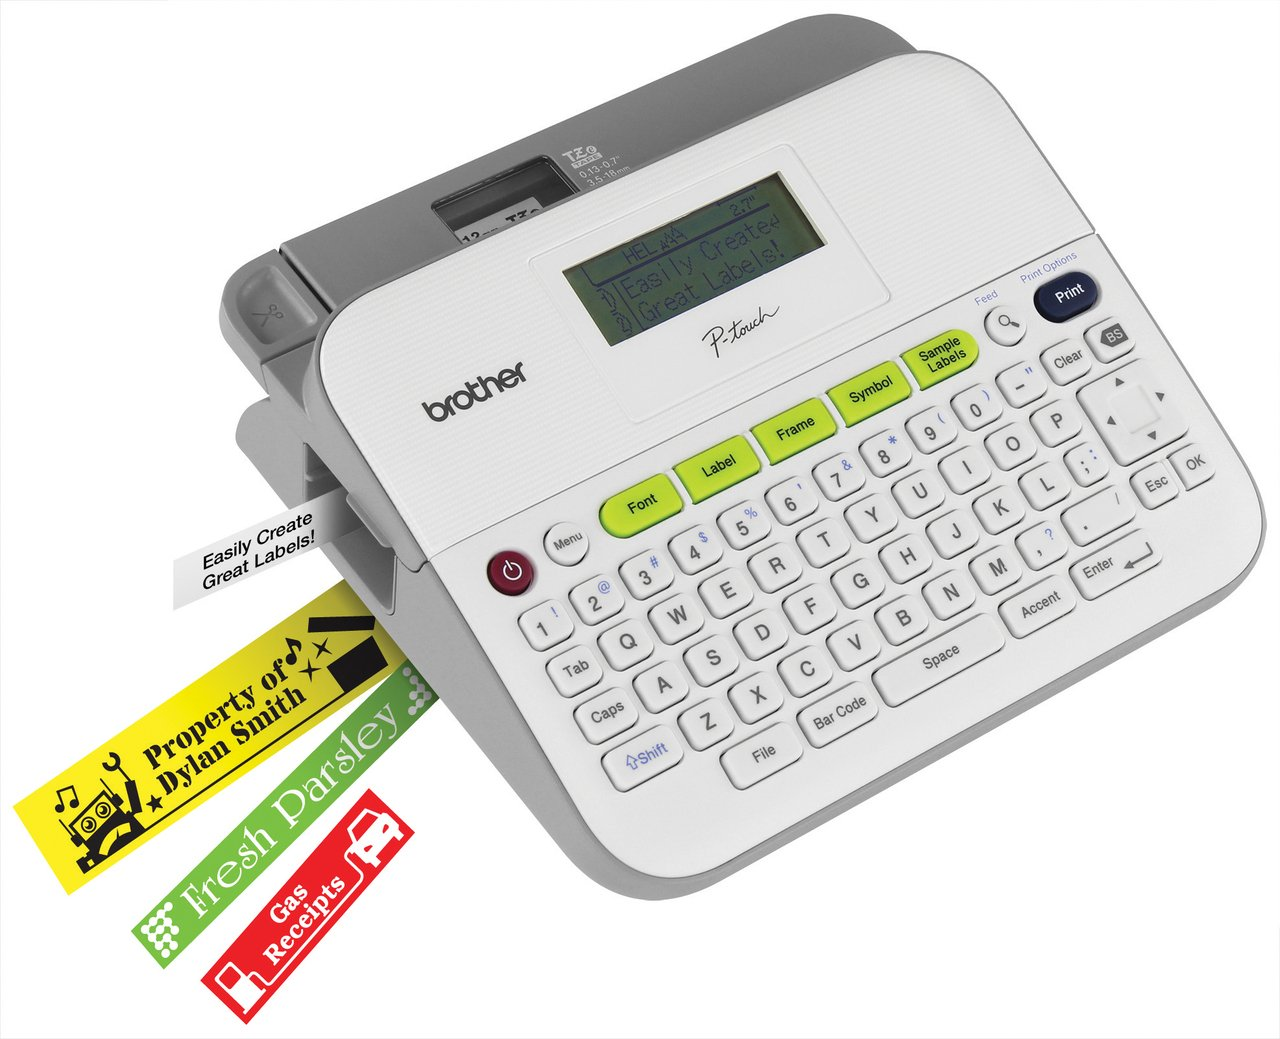 Amazon.com : Brother Pt-d400 Label Maker : Office Products